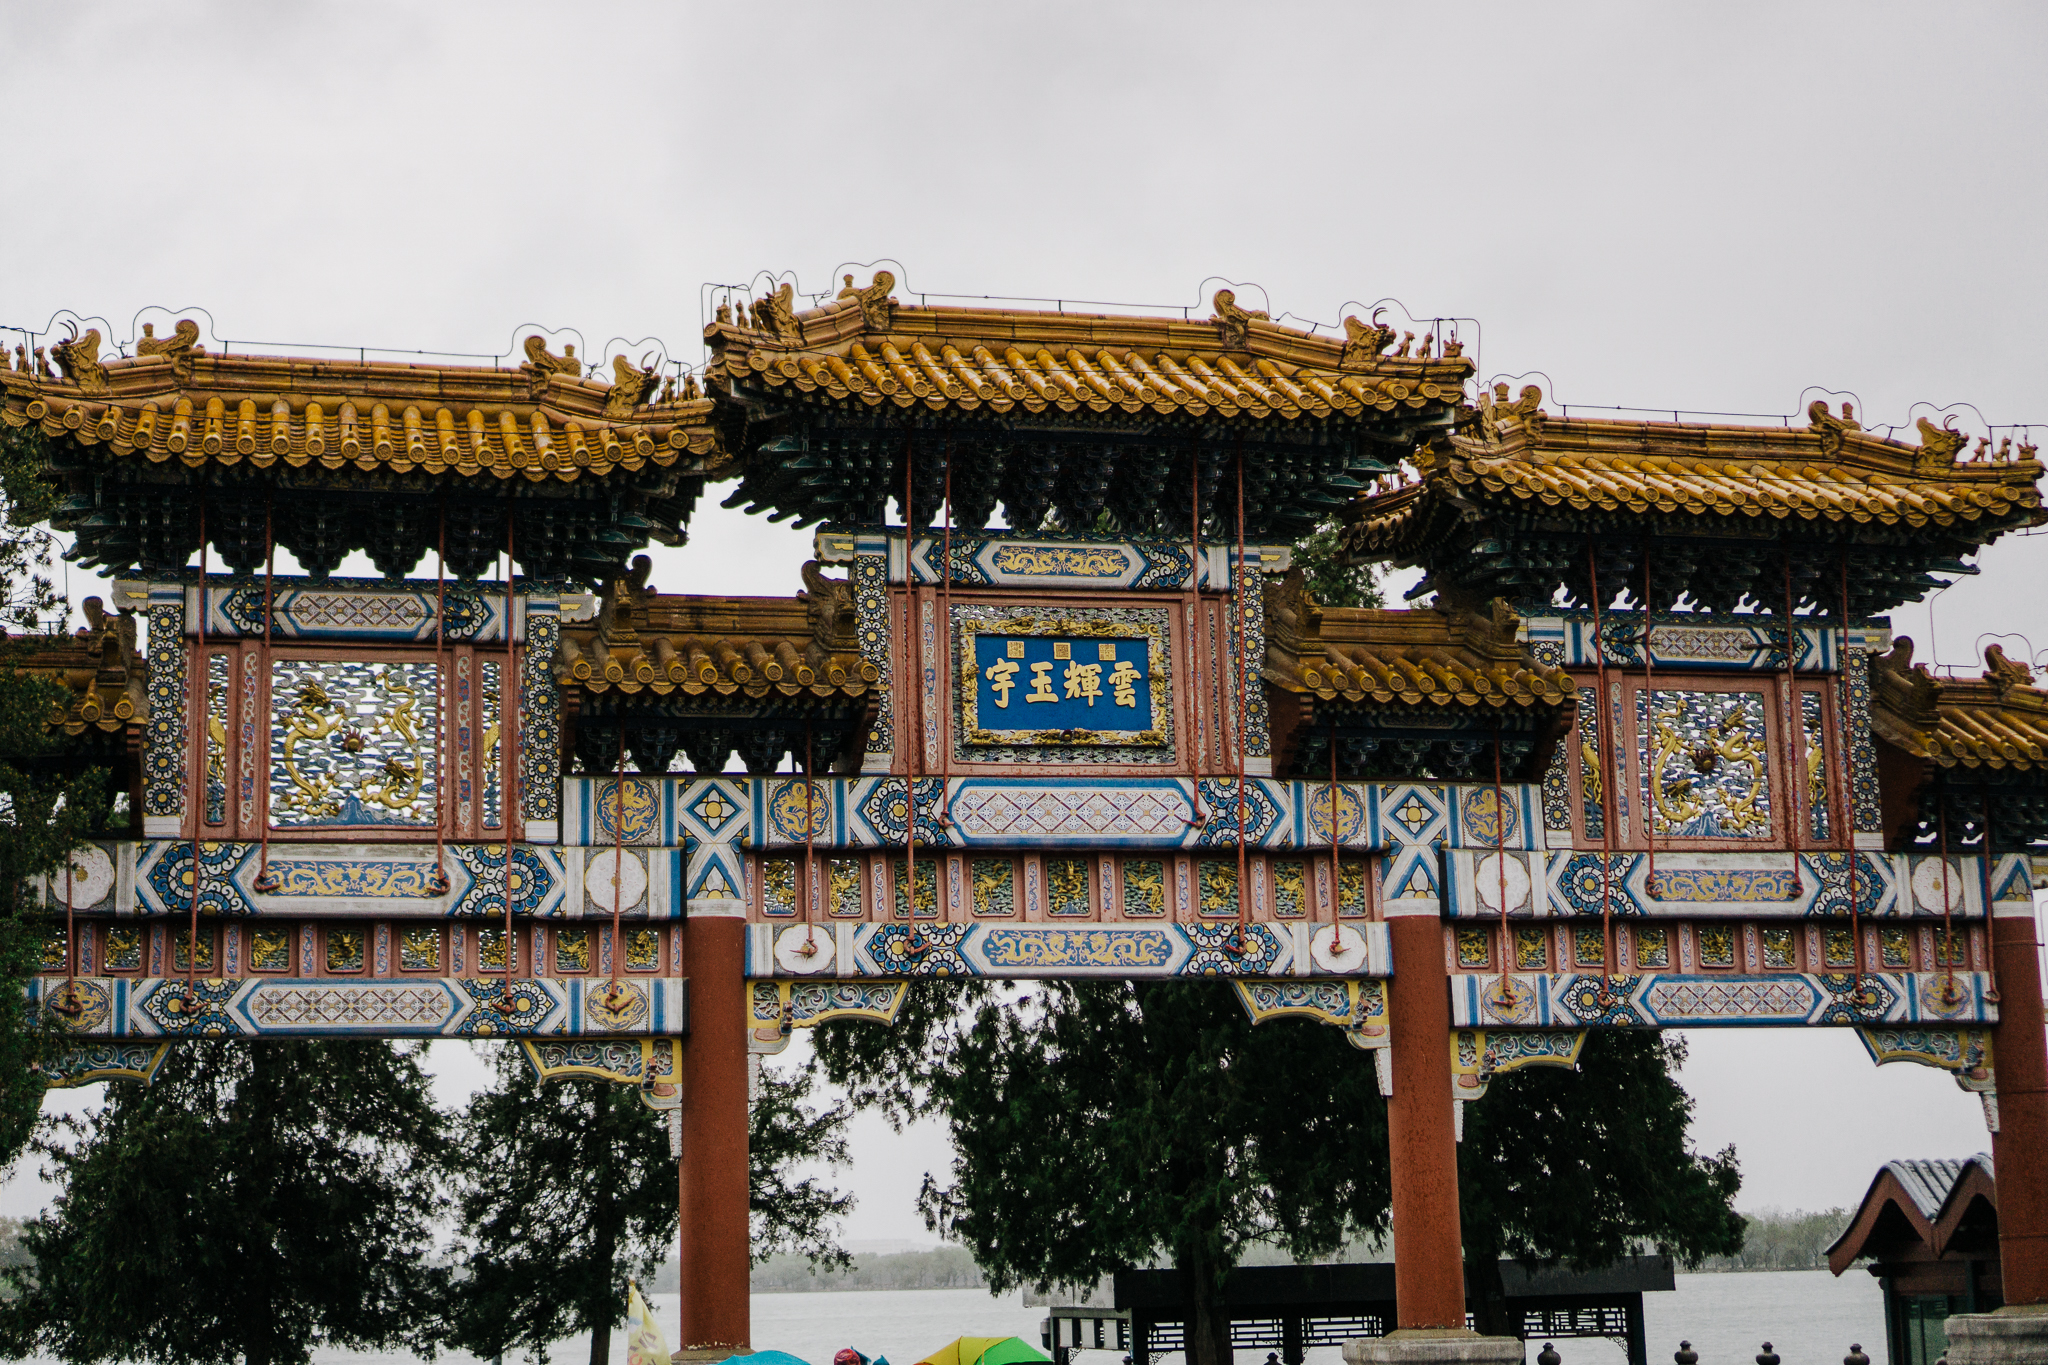 Mutianyu, Great Wall of China,  Beijing, Forbidden City, Emperors Summer Palace (38 of 51).jpg